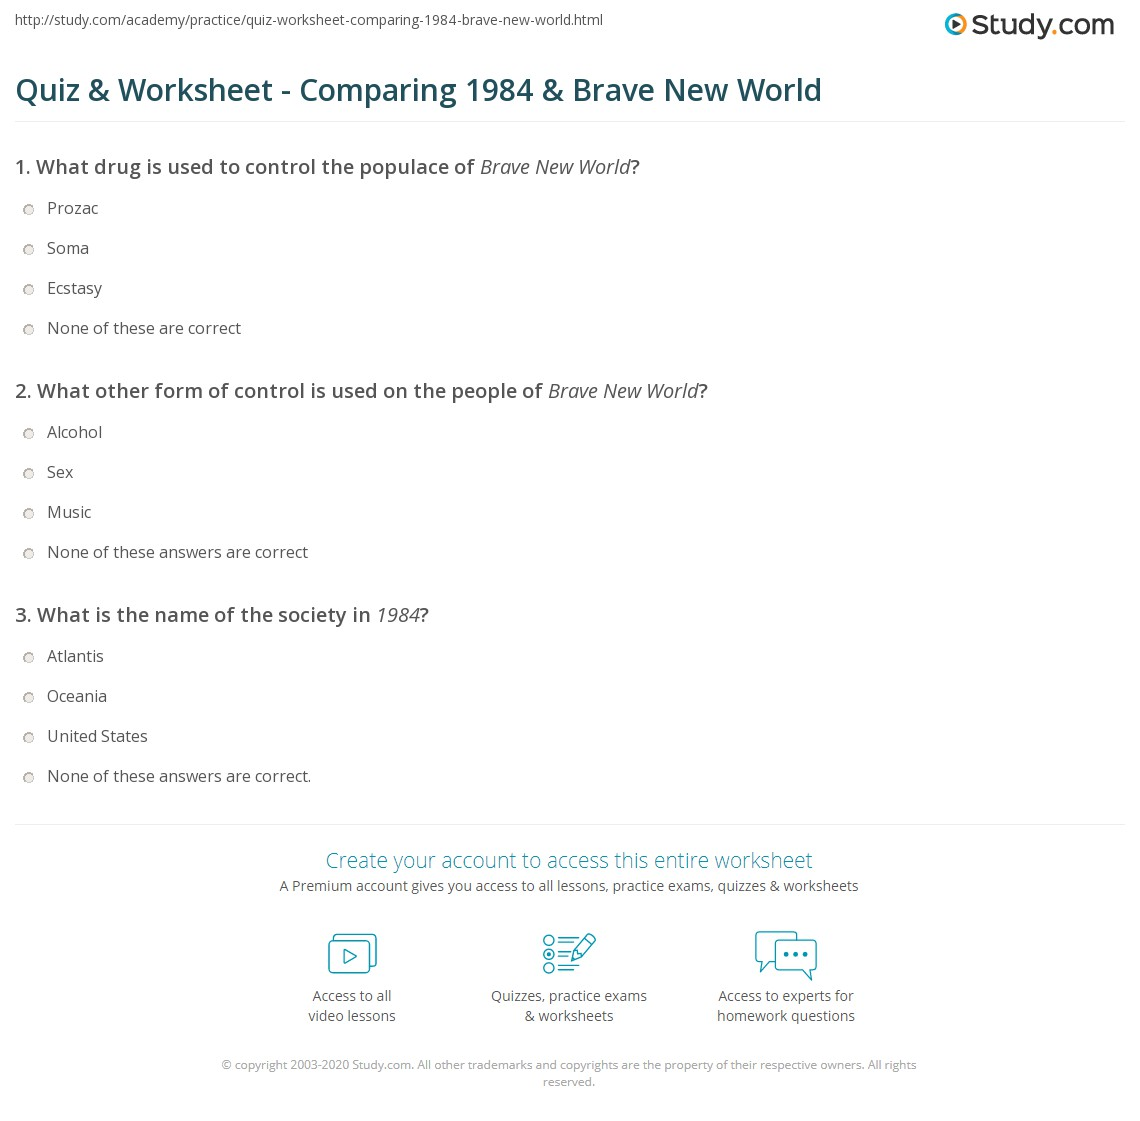 quiz worksheet comparing 1984 brave new world study com